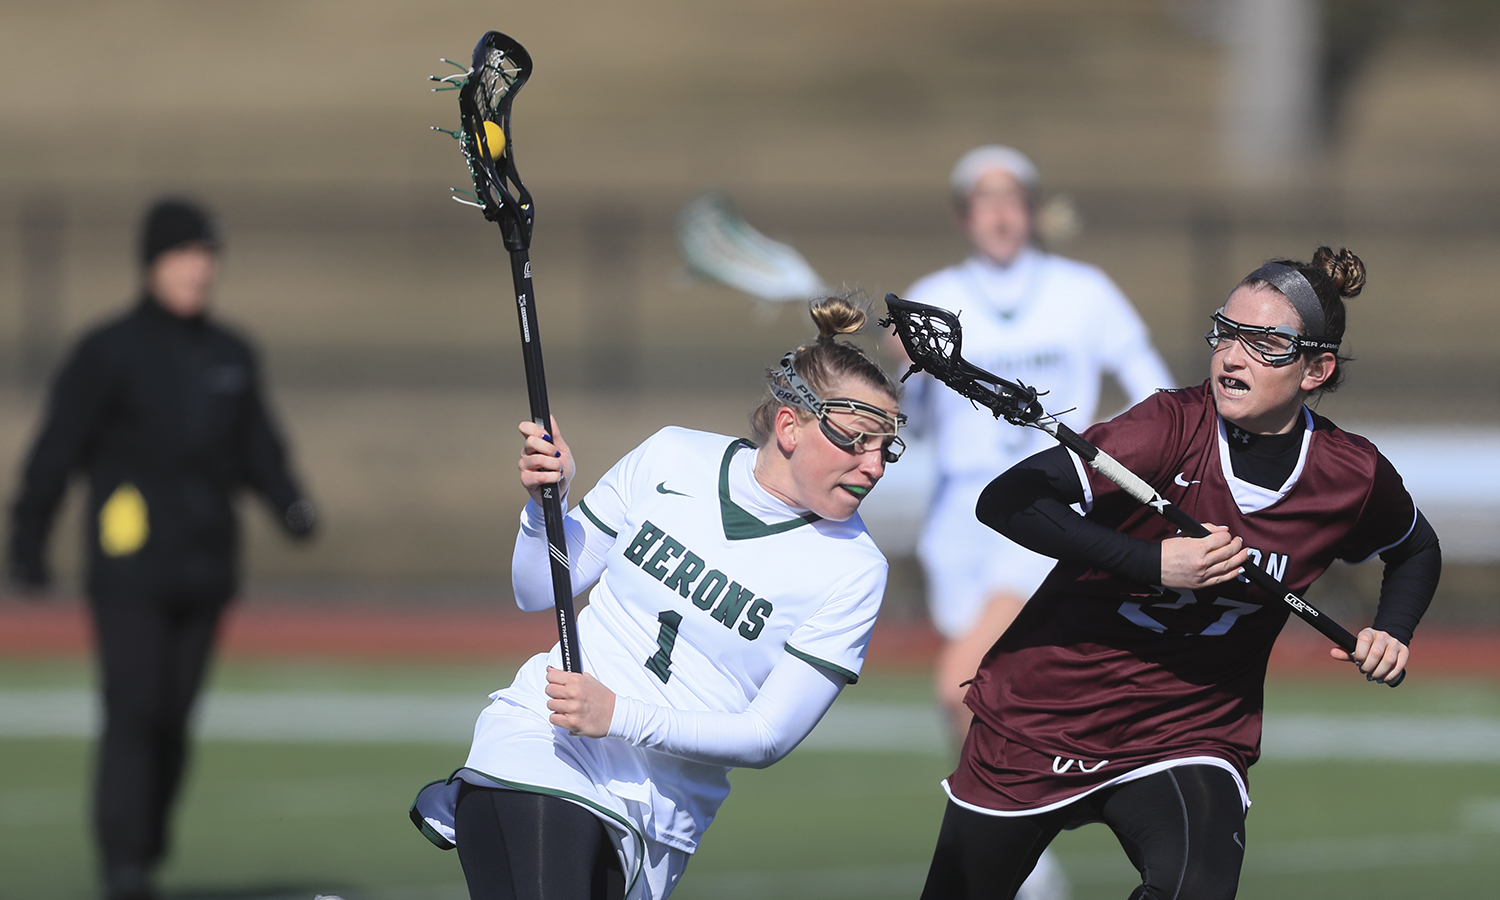 Ali Burns '18 carries the ball dowfield during William Smith's 10-4 win over Union College.